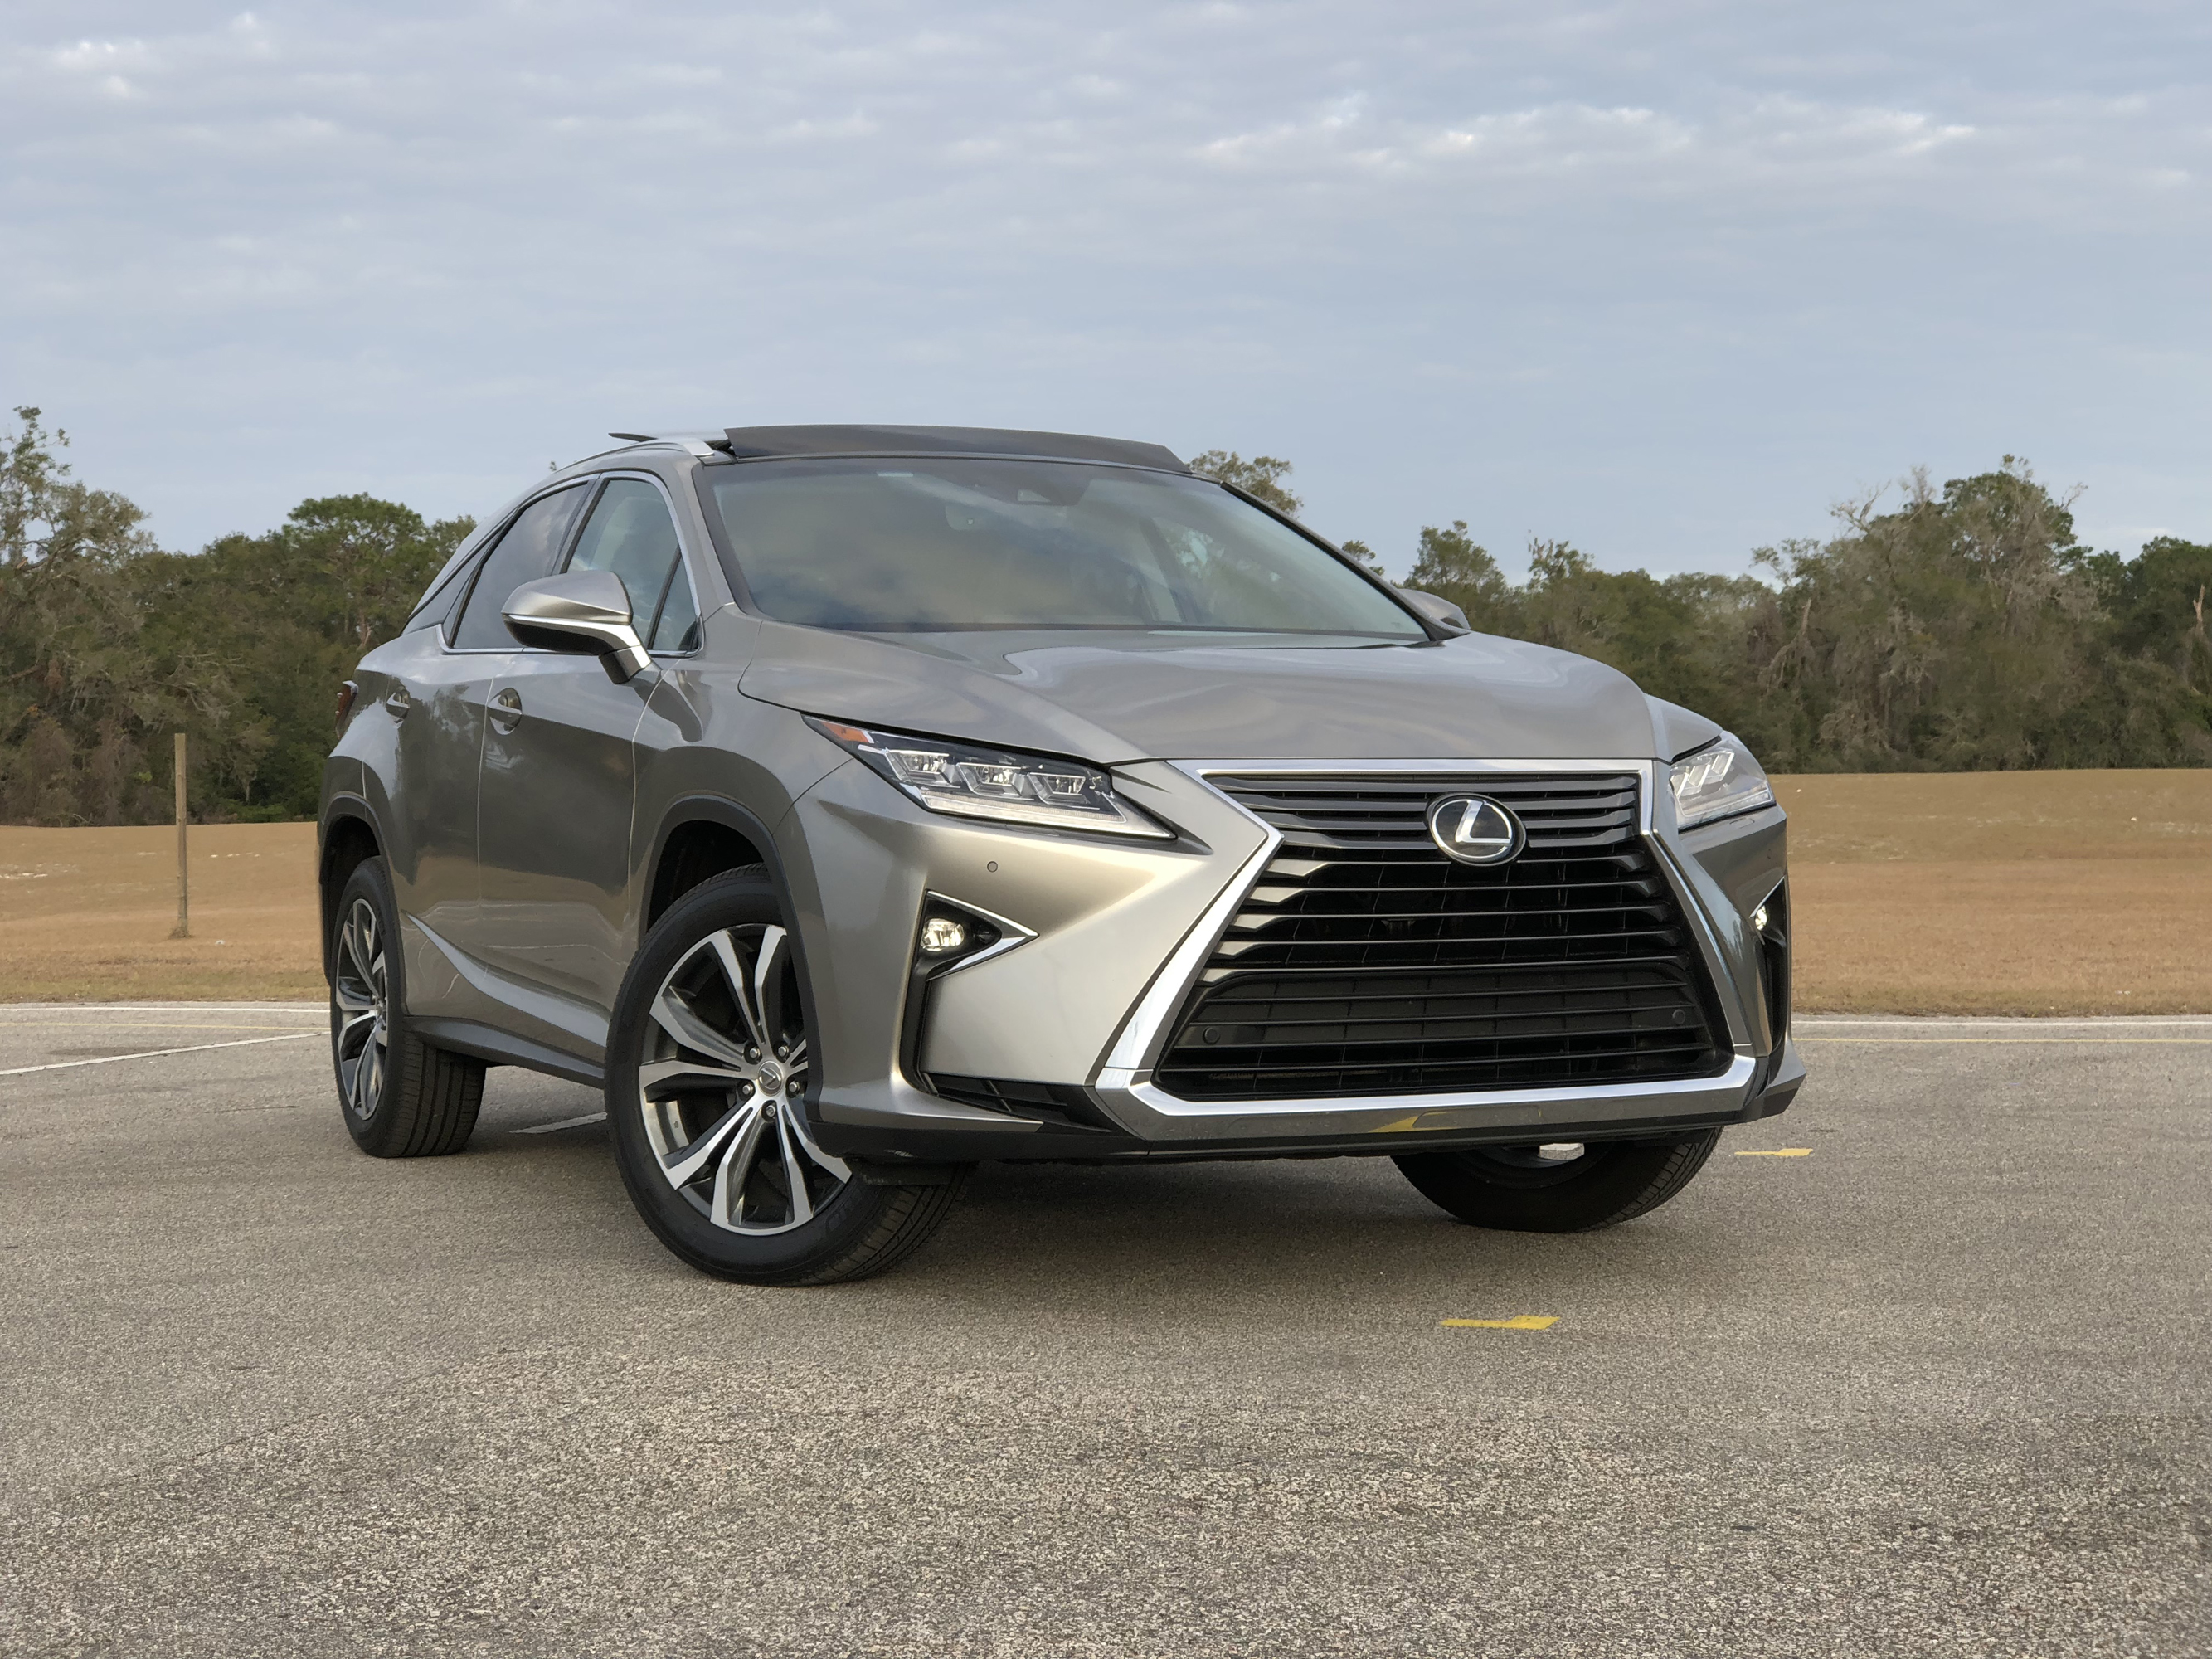 f steadfast lexus hybrid rx suv review sporty gets lsf front sport view